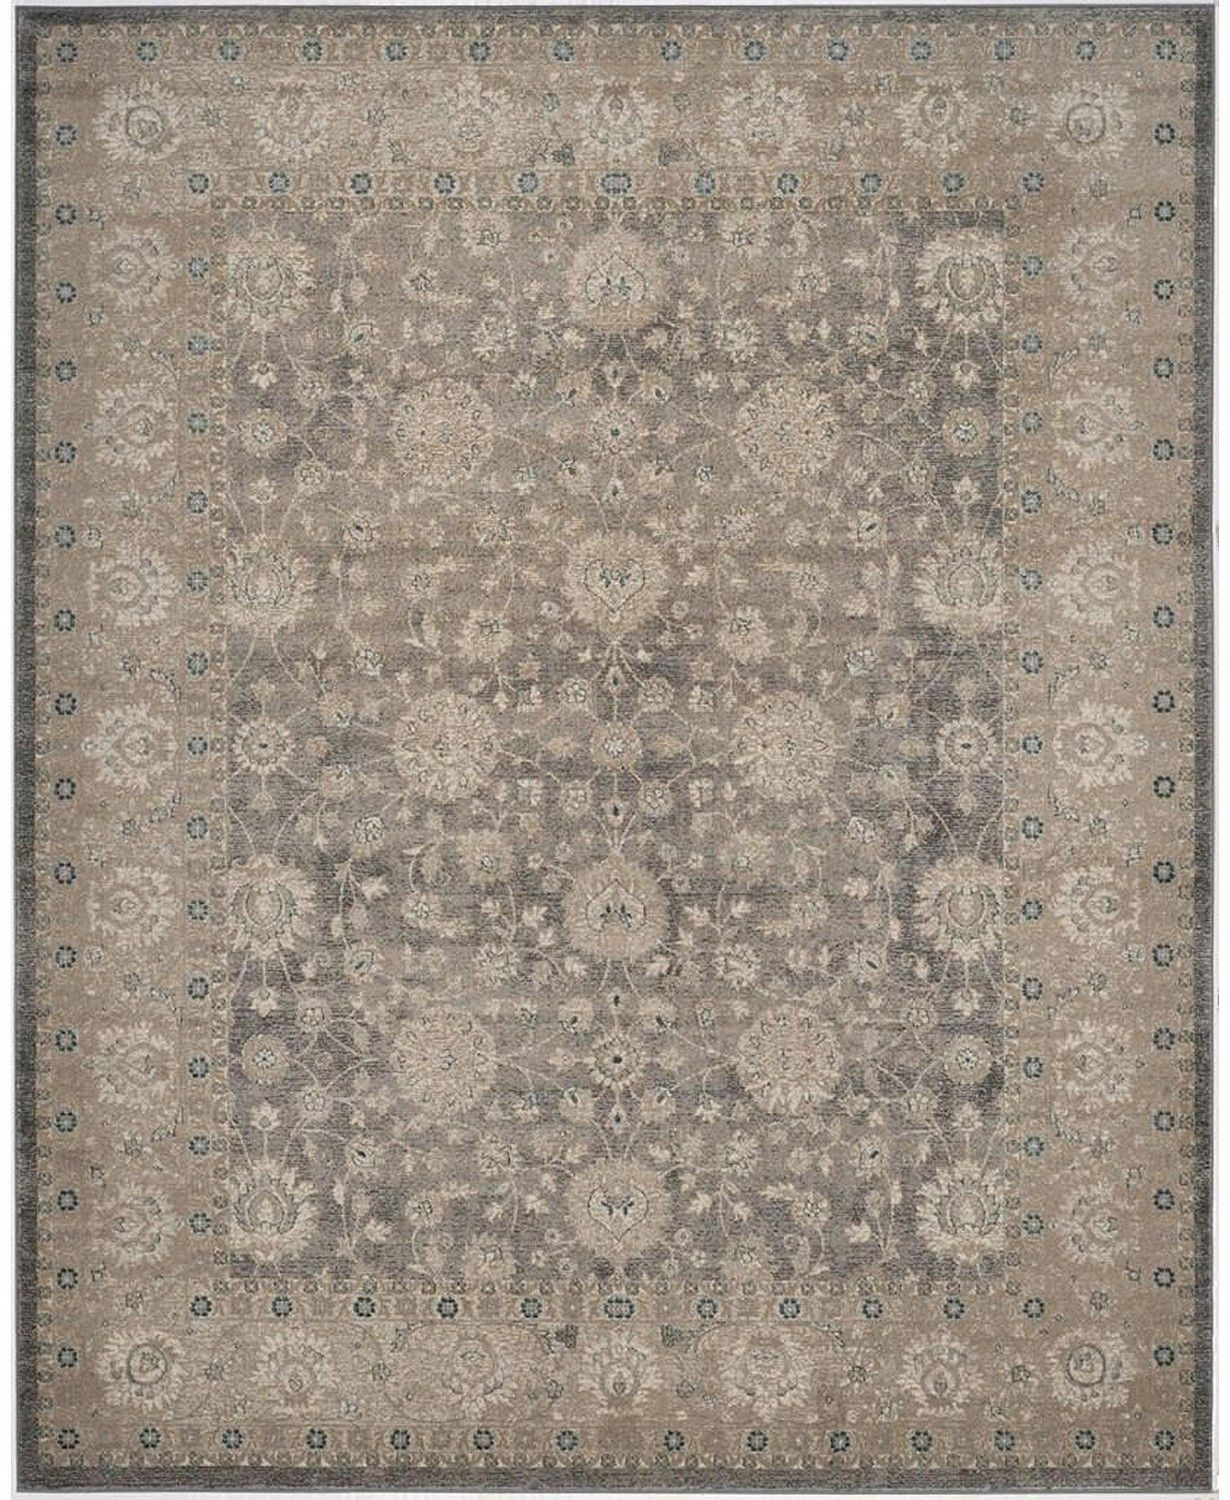 Safavieh Sofia Light Gray And Beige 9 X 12 Area Rug Reviews Rugs Macy S Grey And Beige Area Rugs Safavieh